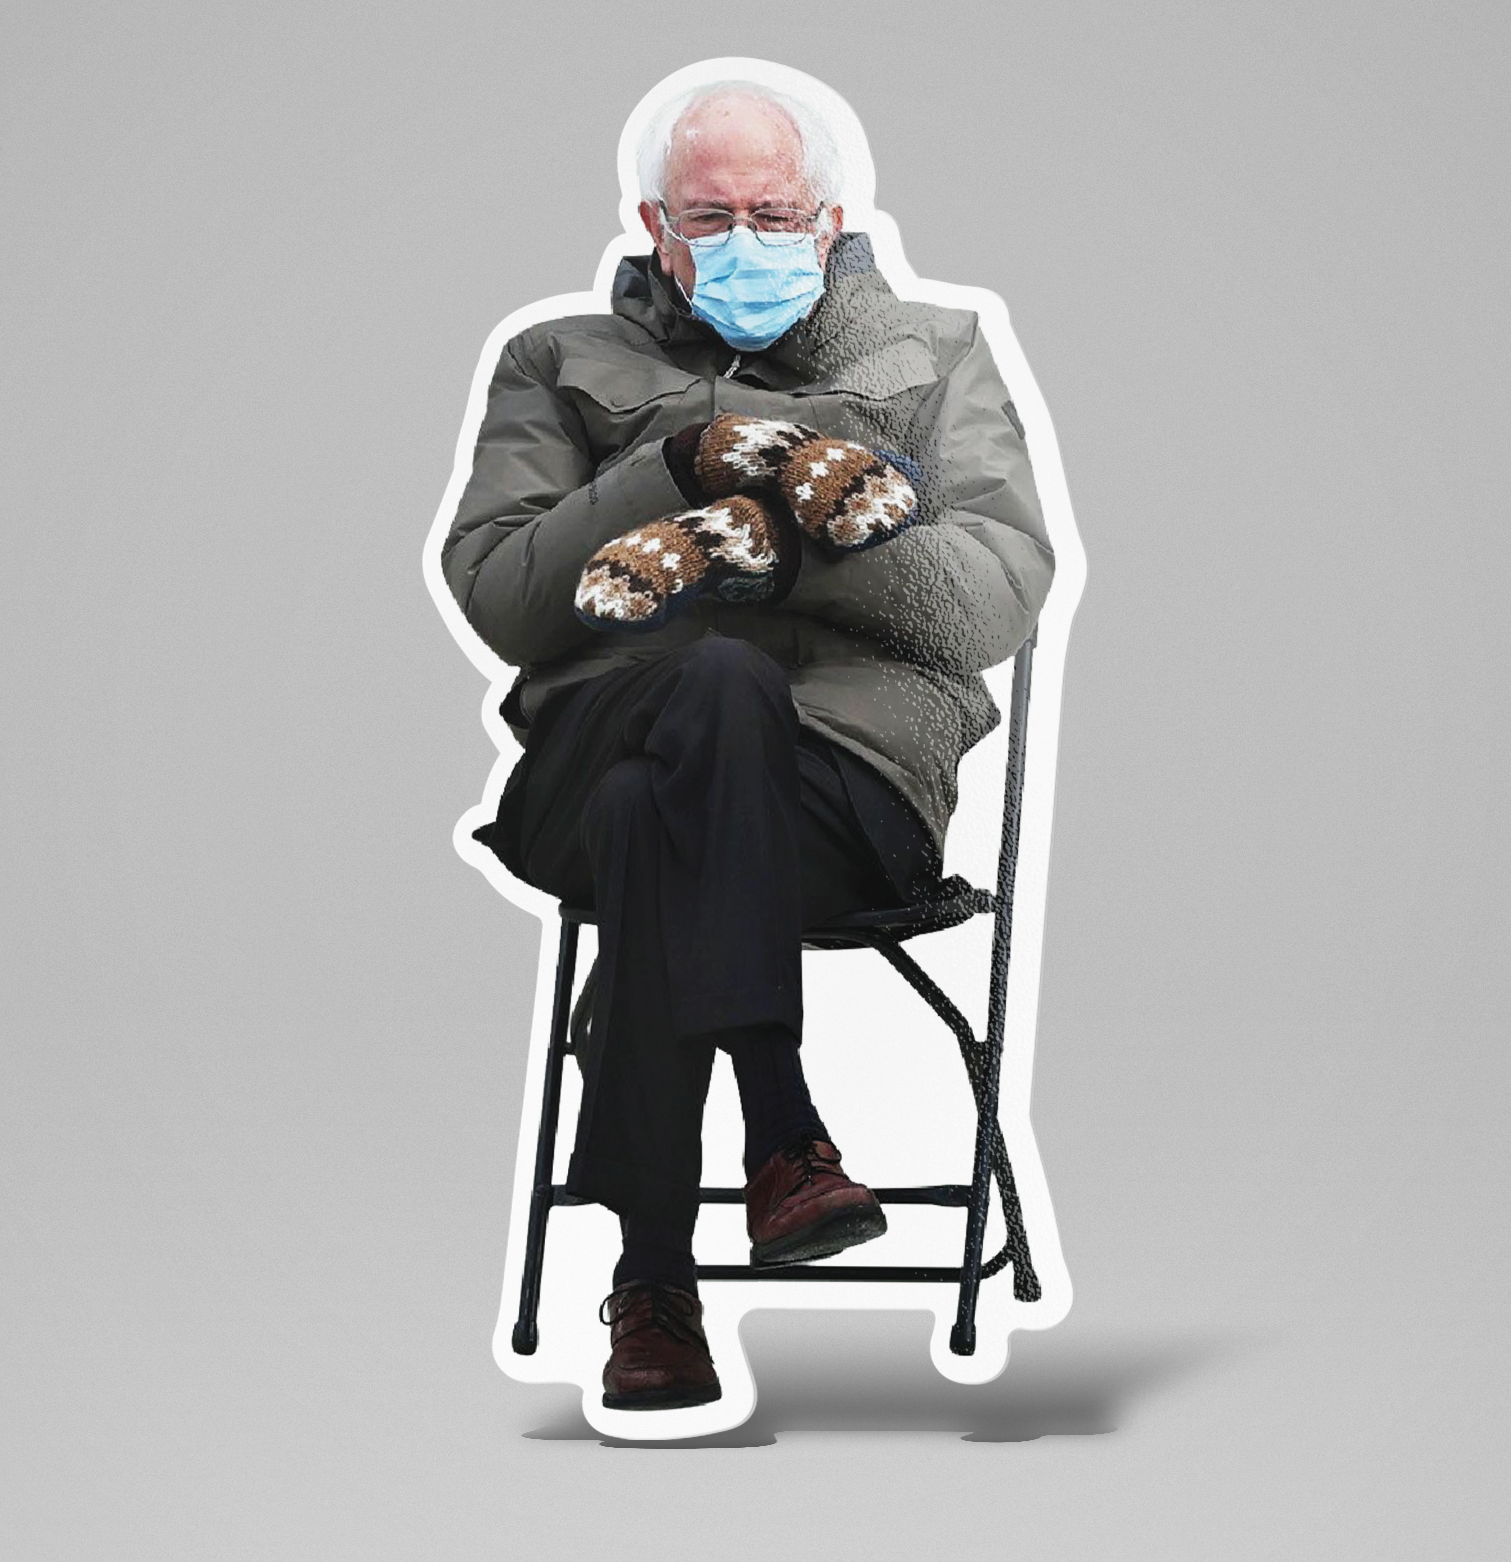 Bernie Sanders Meme Inauguration 2021 / Sticker / Vinyl Decal / Laminated